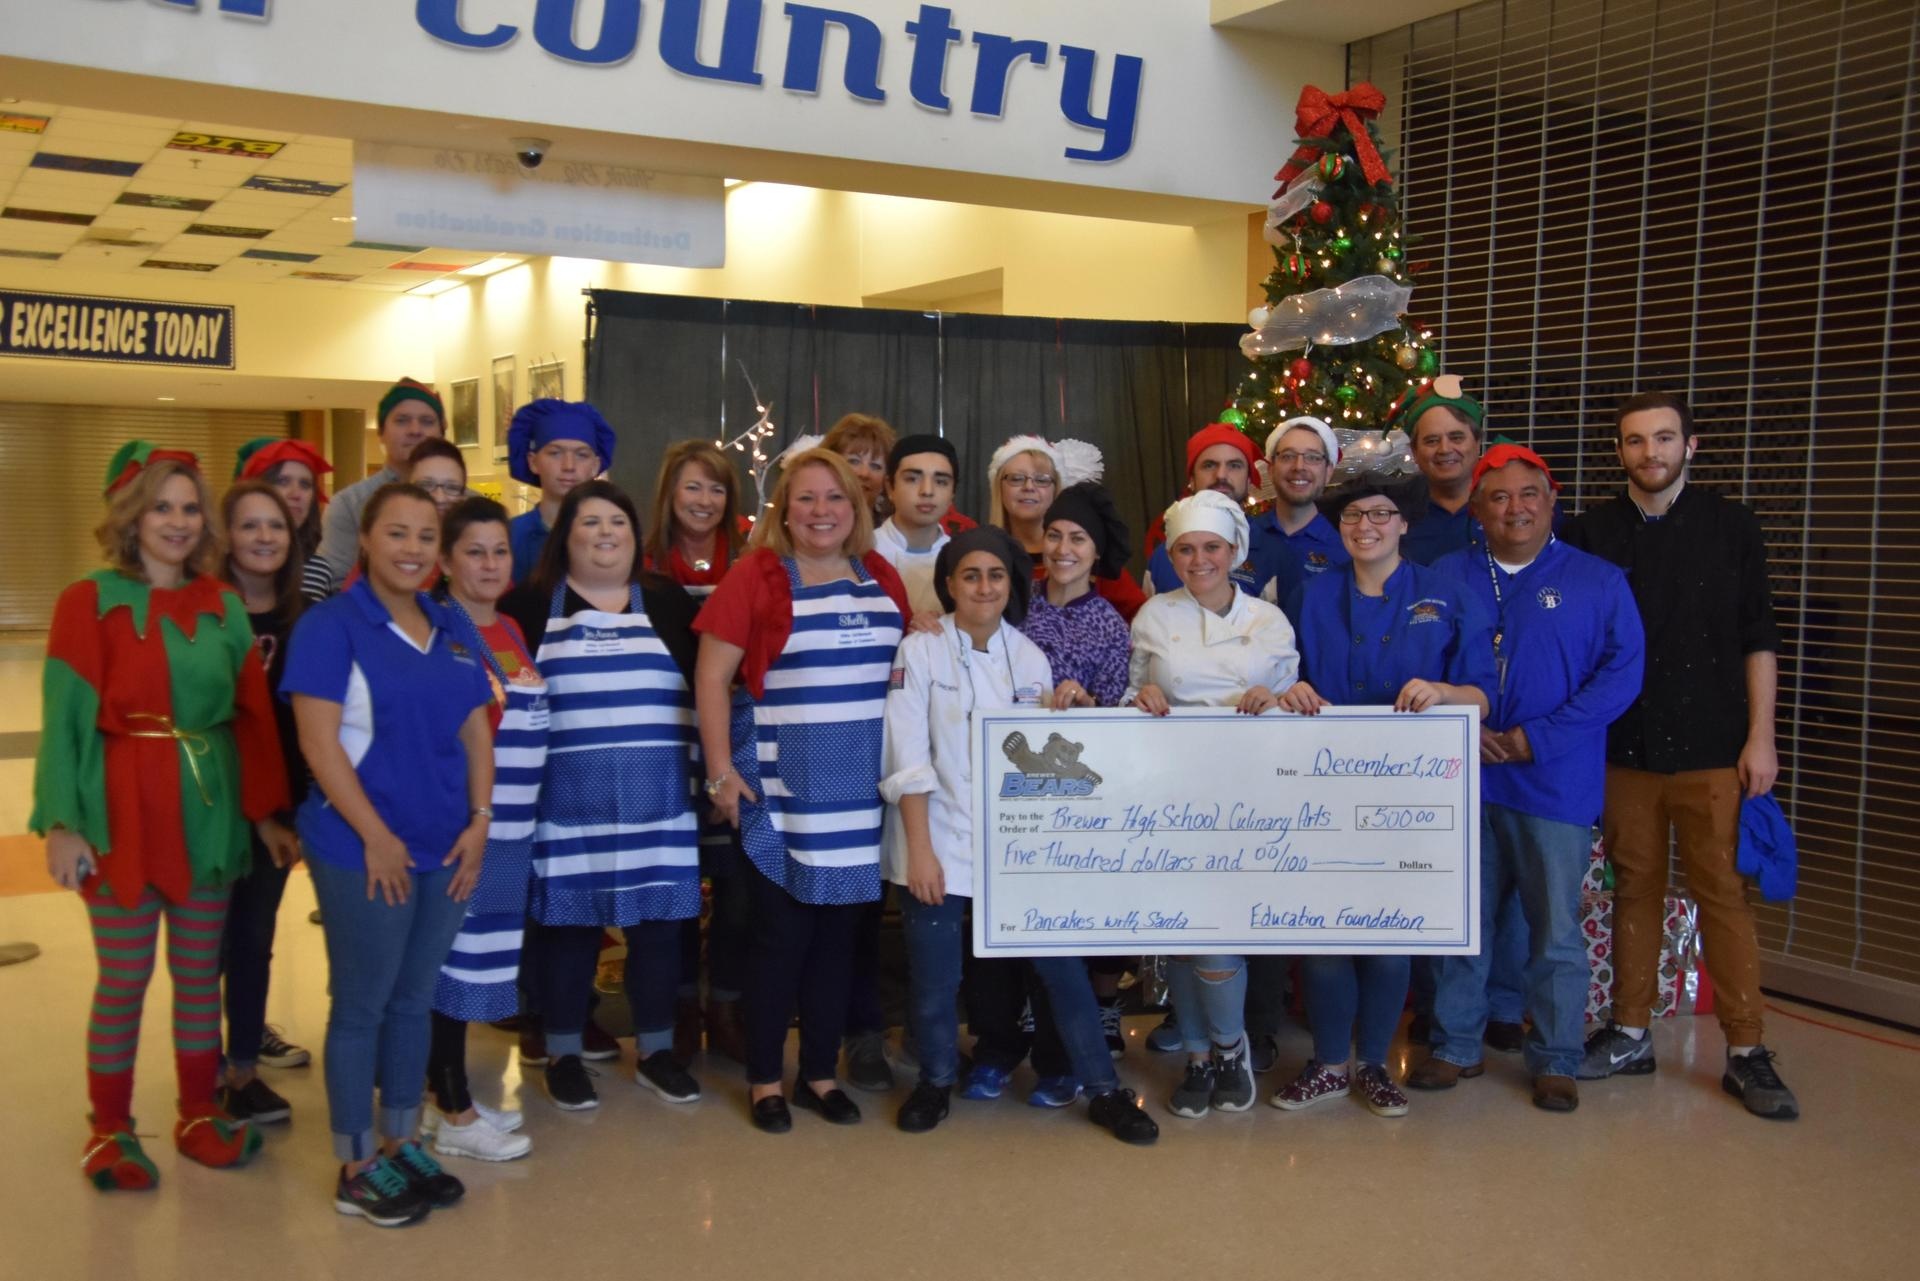 The WSISD Education Foundation and the White Settlement Chamber of Commerce sponsored our 3rd annual Pancakes with Santa event on Dec. 1. The organizations awarded a portion of the proceeds ($500) to the Brewer High School Culinary Arts program, which fed more than 500 people a pancake breakfast.